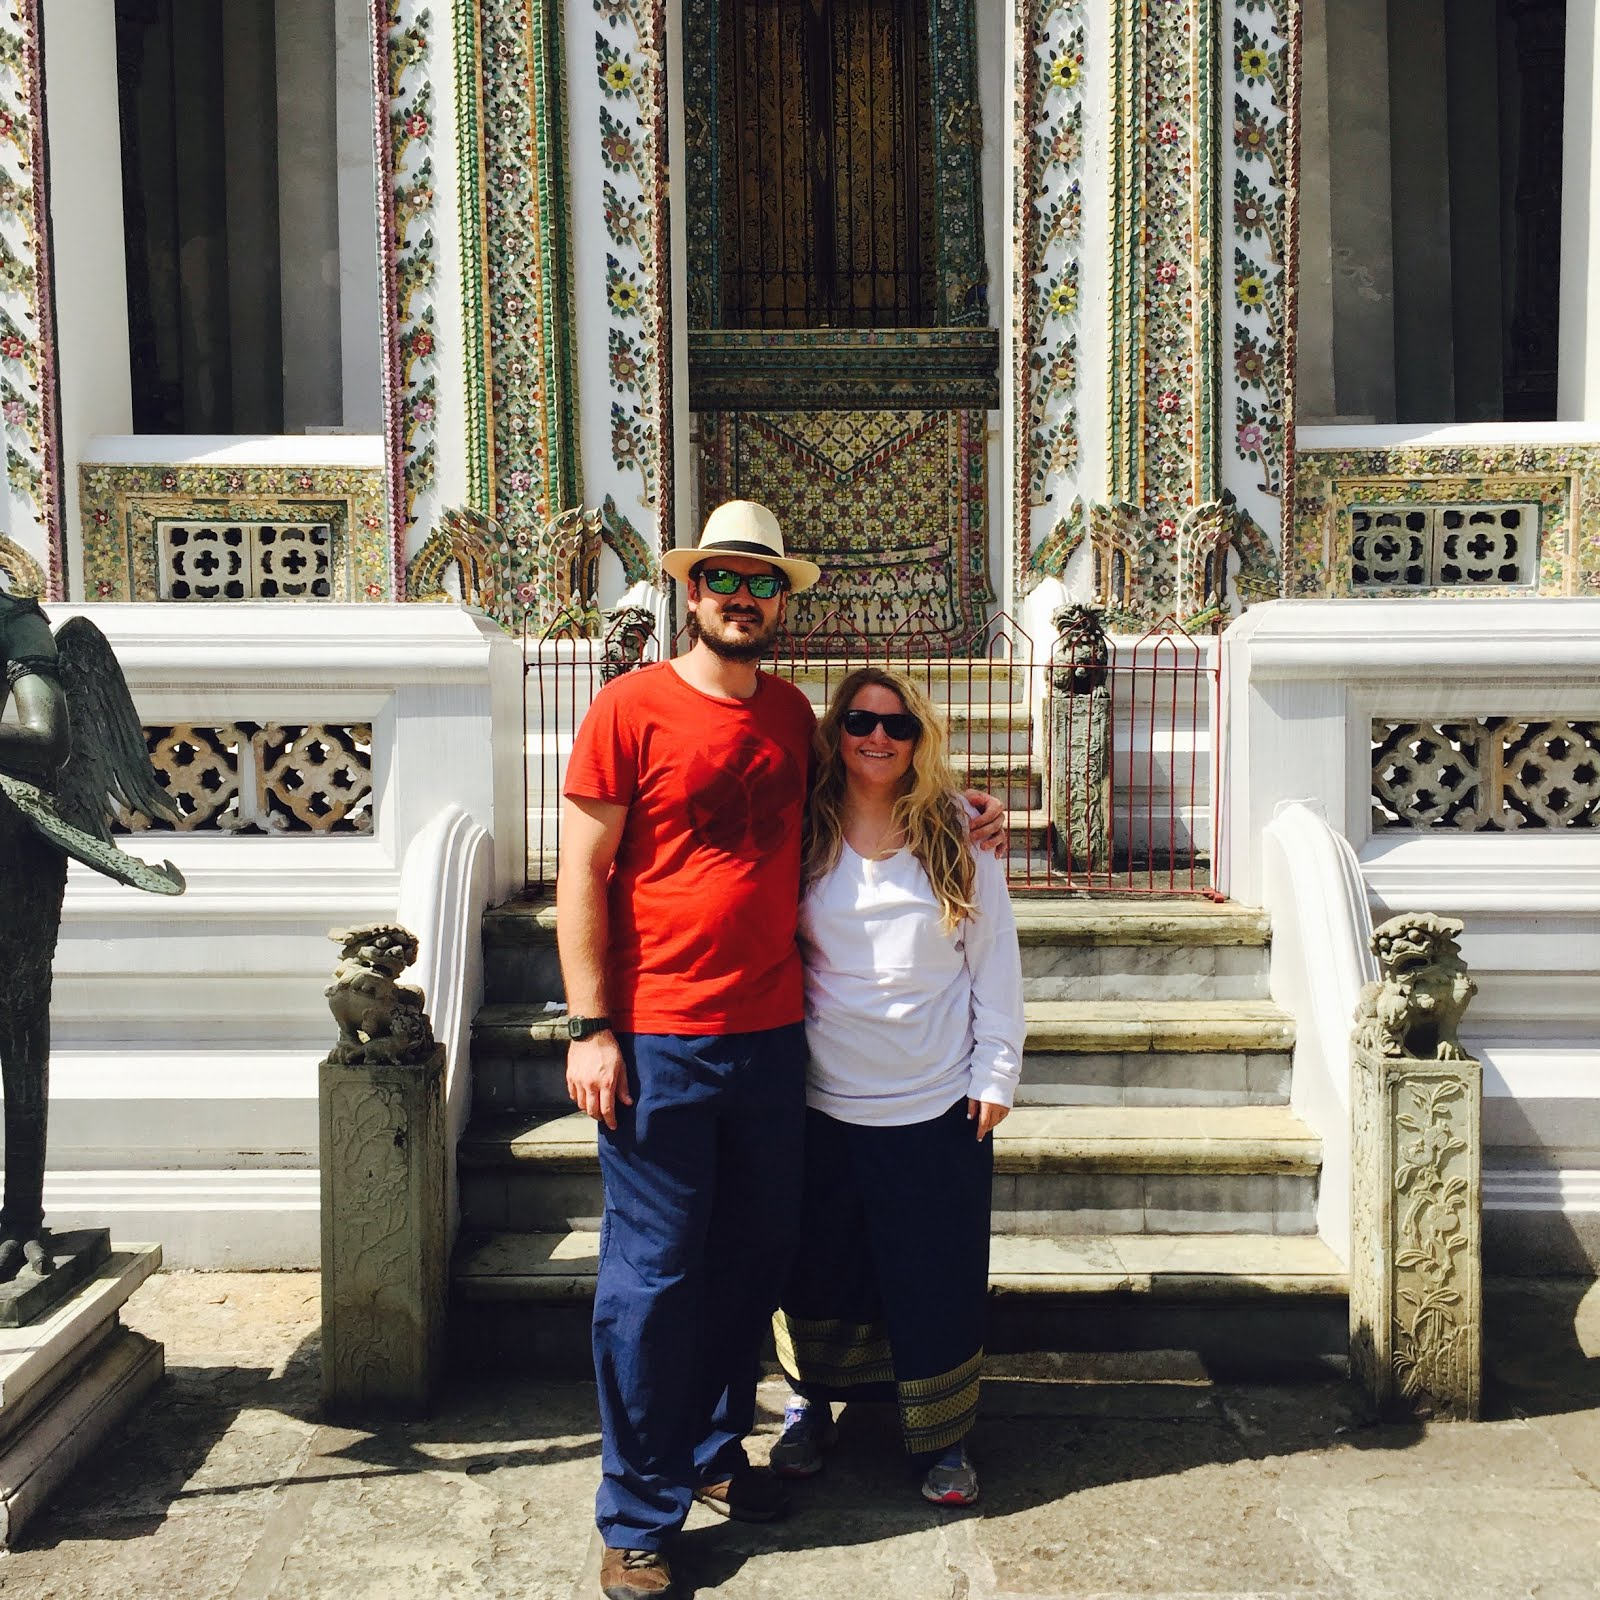 Visiting the Grand Palace in Thailand